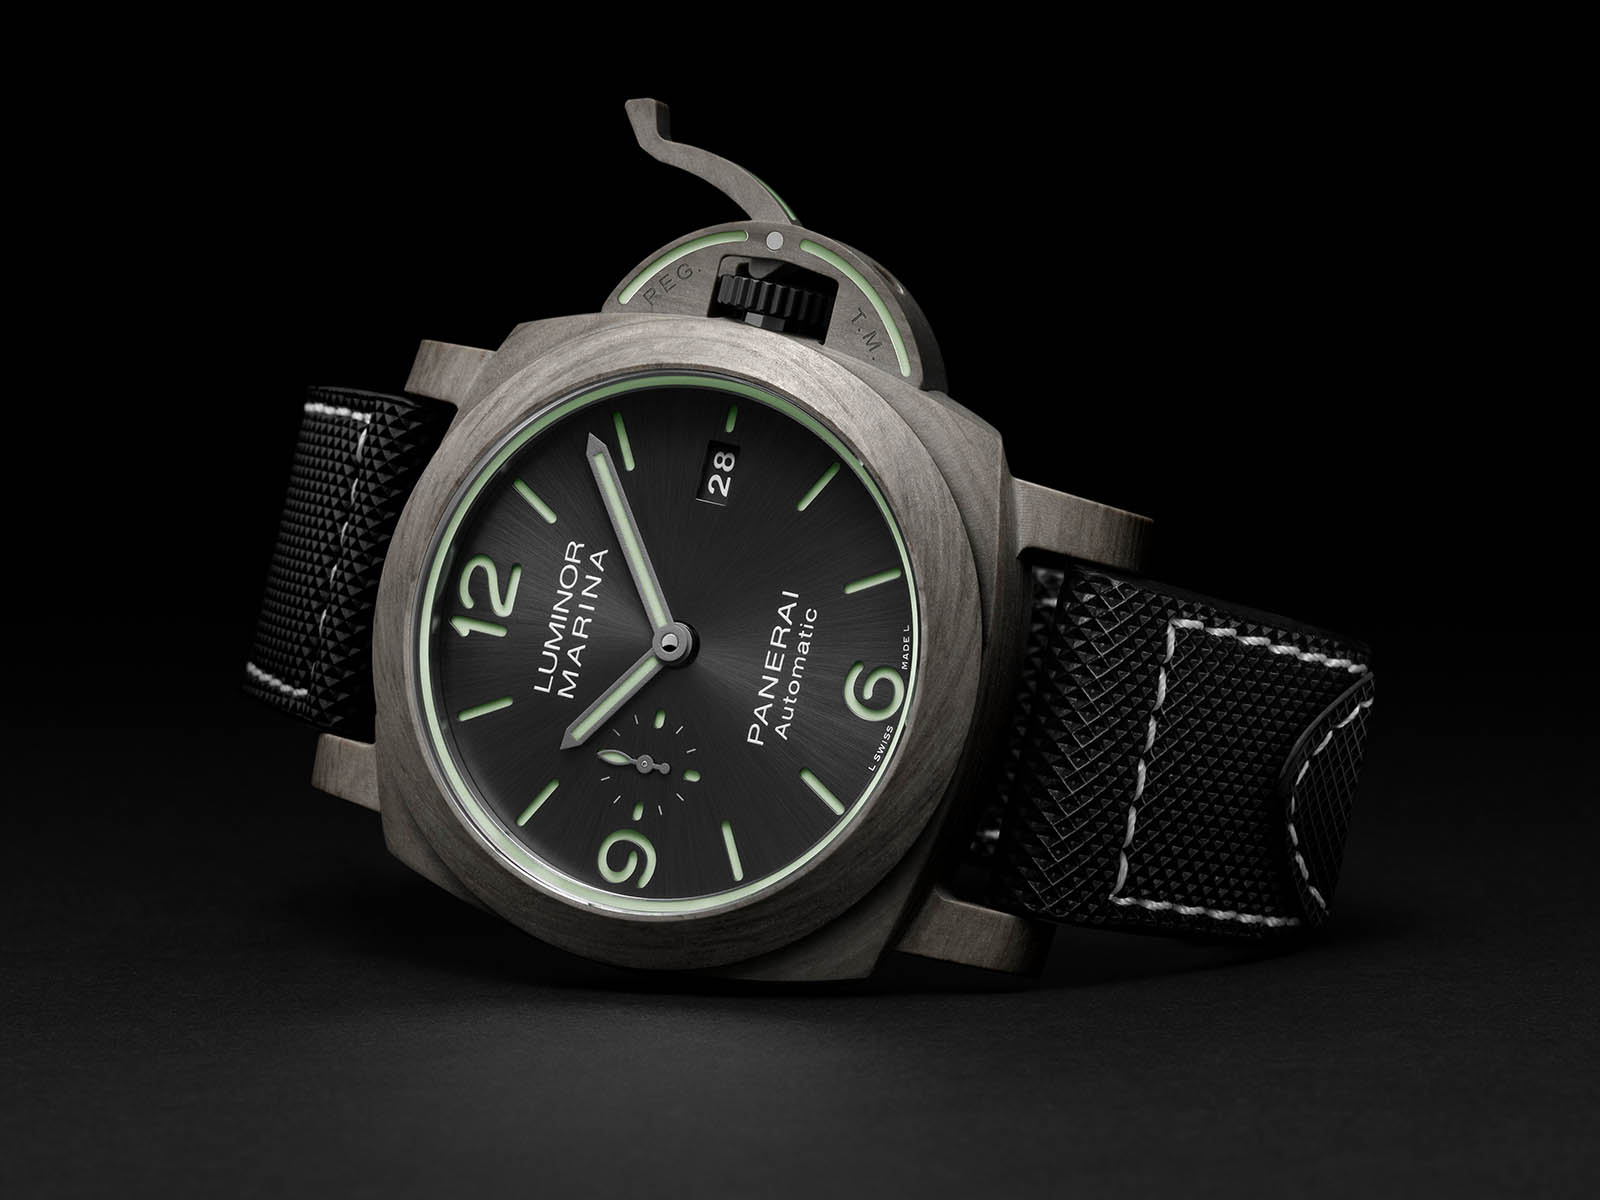 pam01119-officine-panerai-luminor-marina-fibratech-44mm.jpg